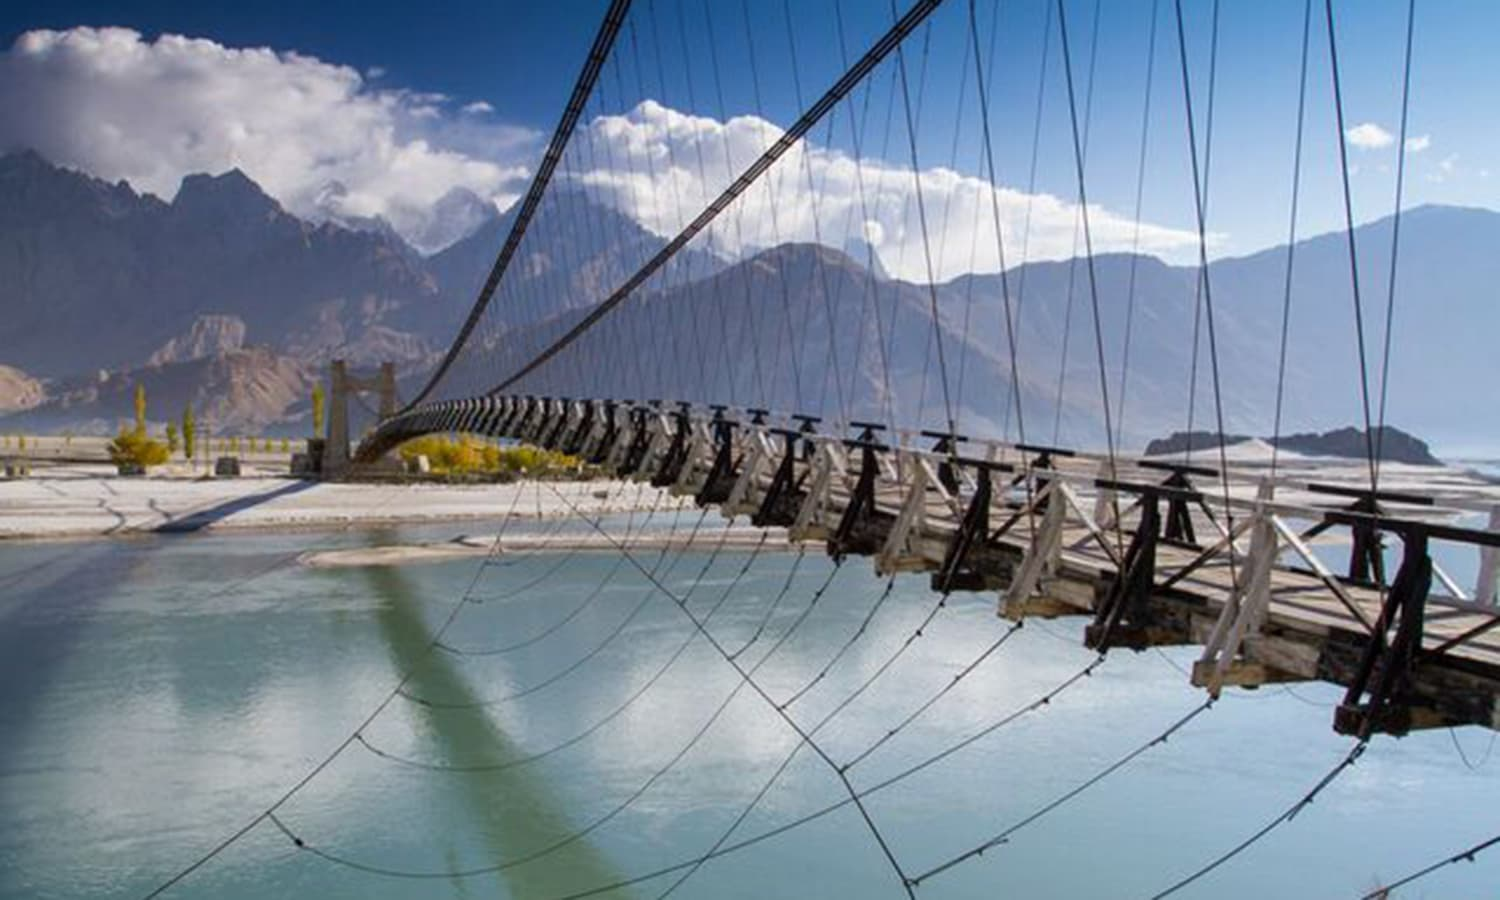 A suspension bridge connecting the Khaplu and Shyok valleys. —Photo by Ghulam Rasool